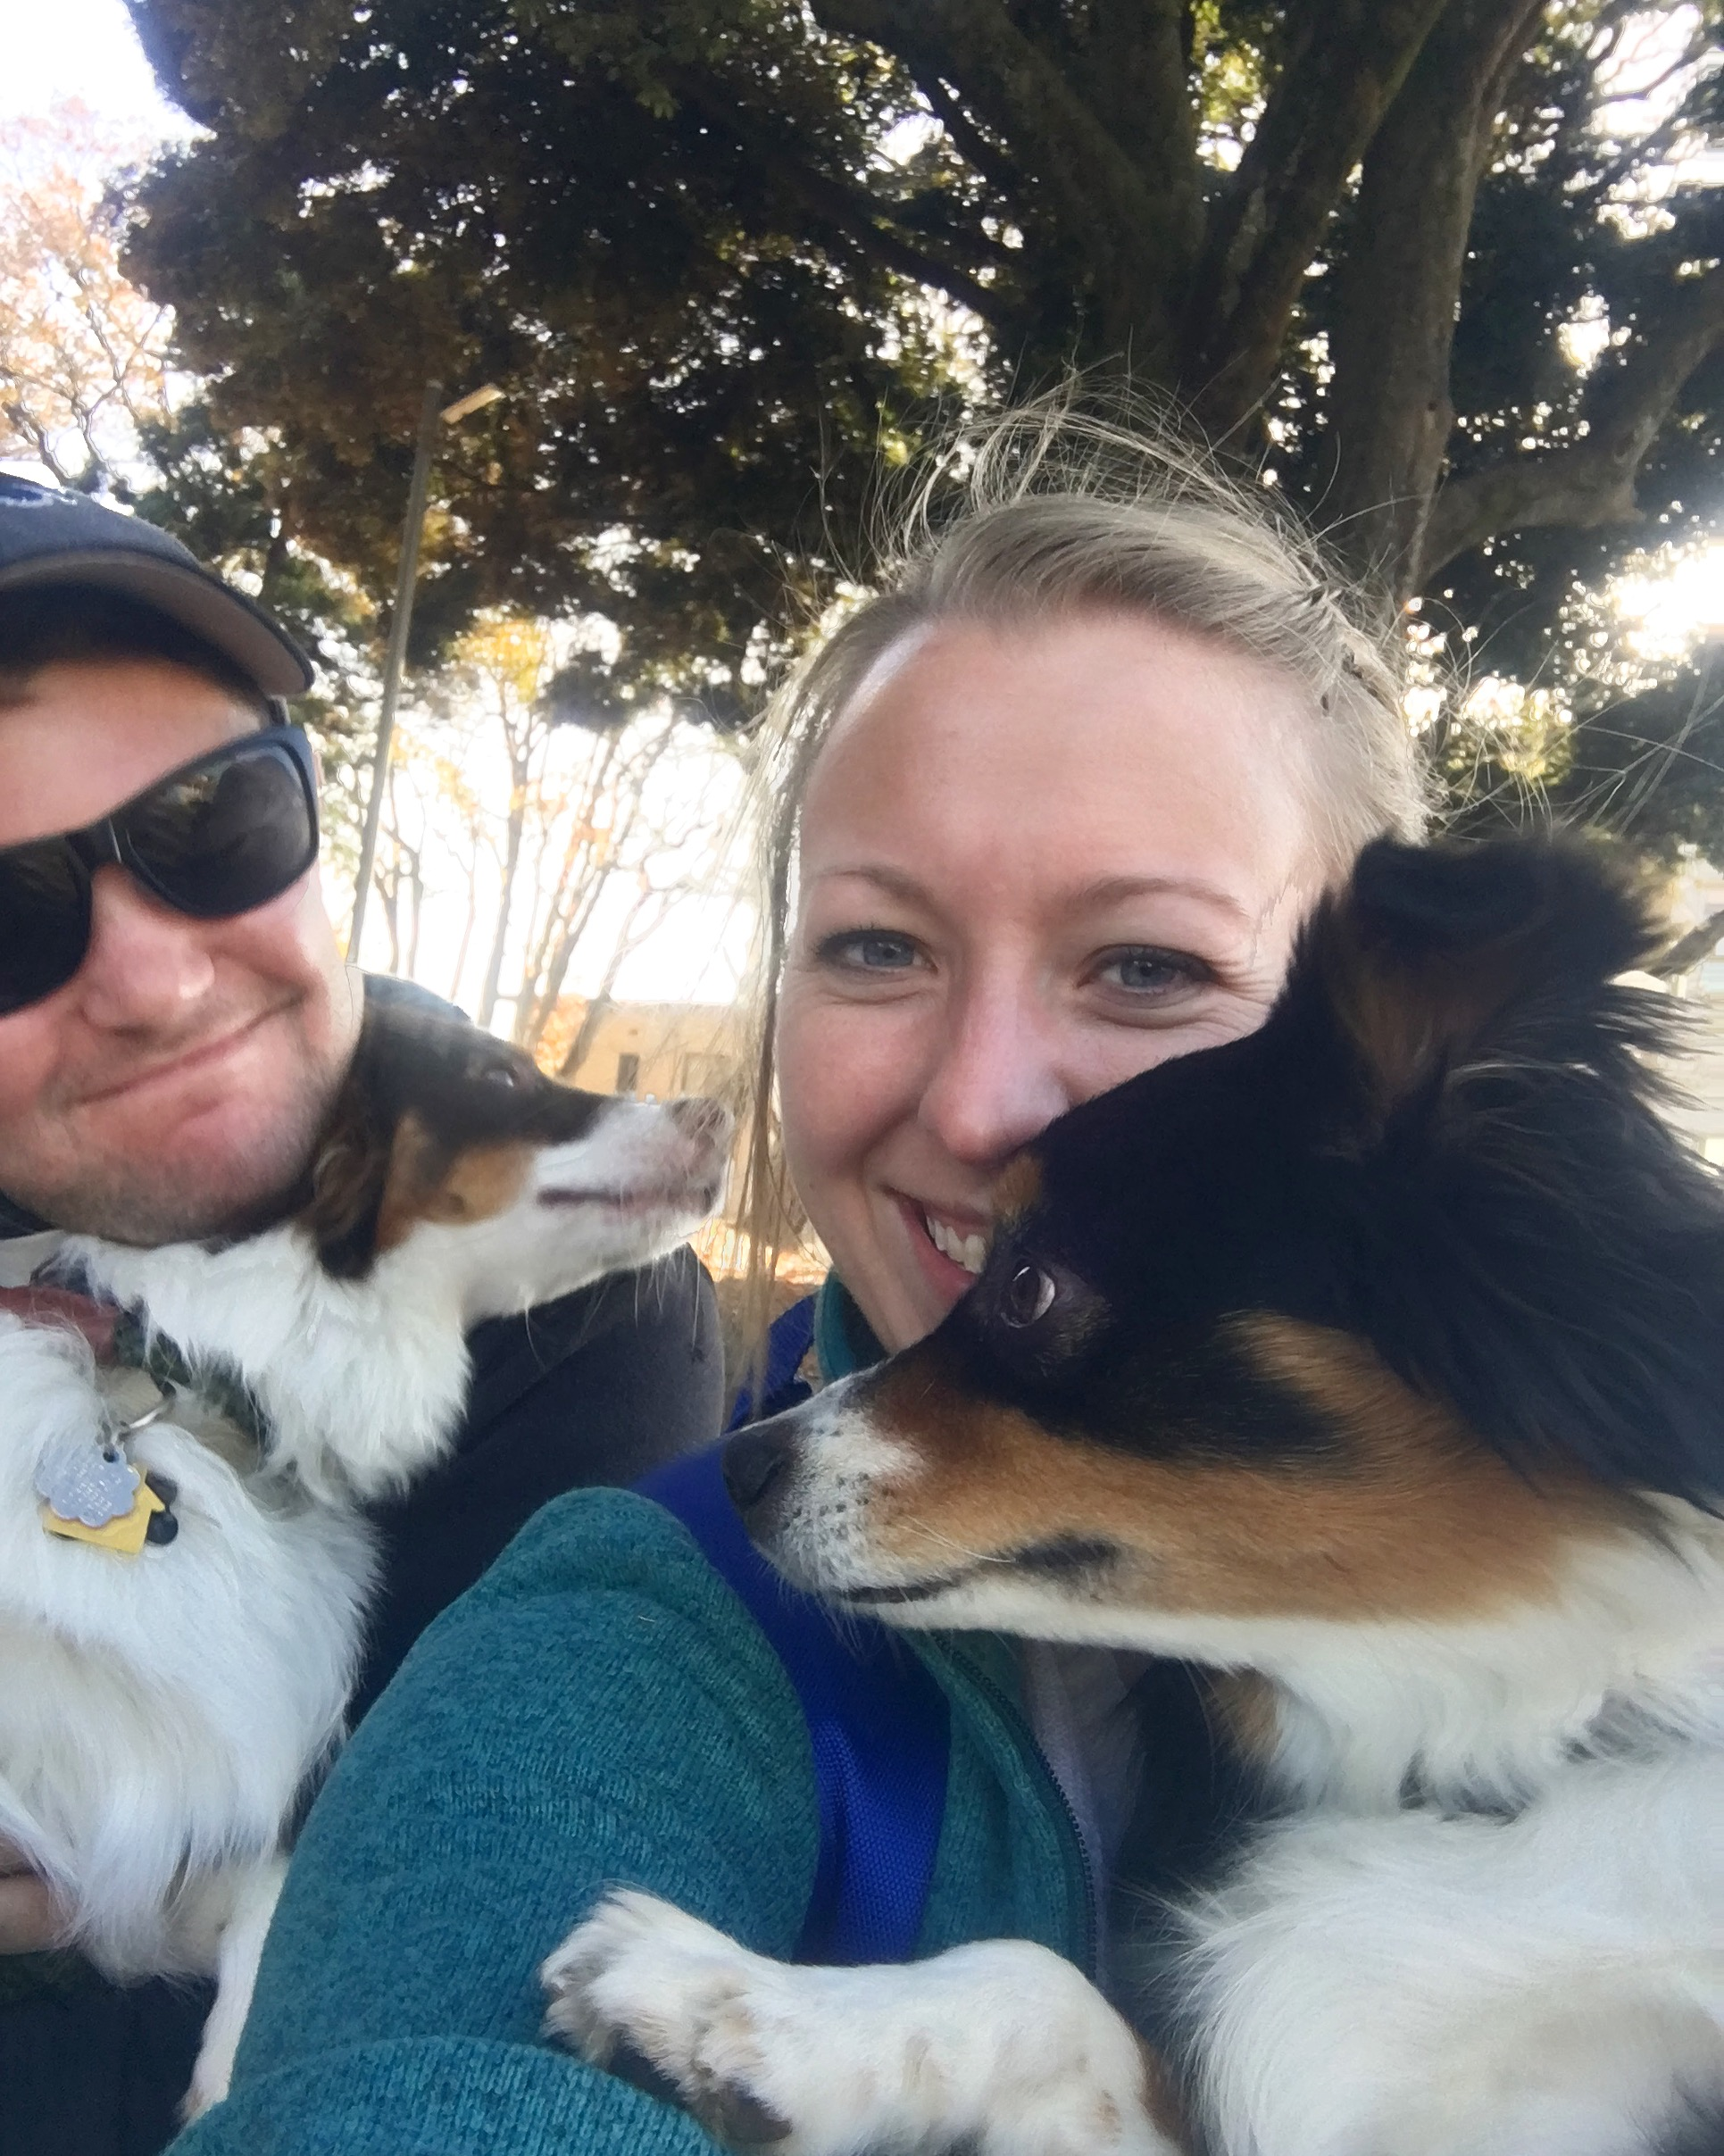 A photo from one of our countless walks as a family (I would walk 10+ miles a day with these guys)